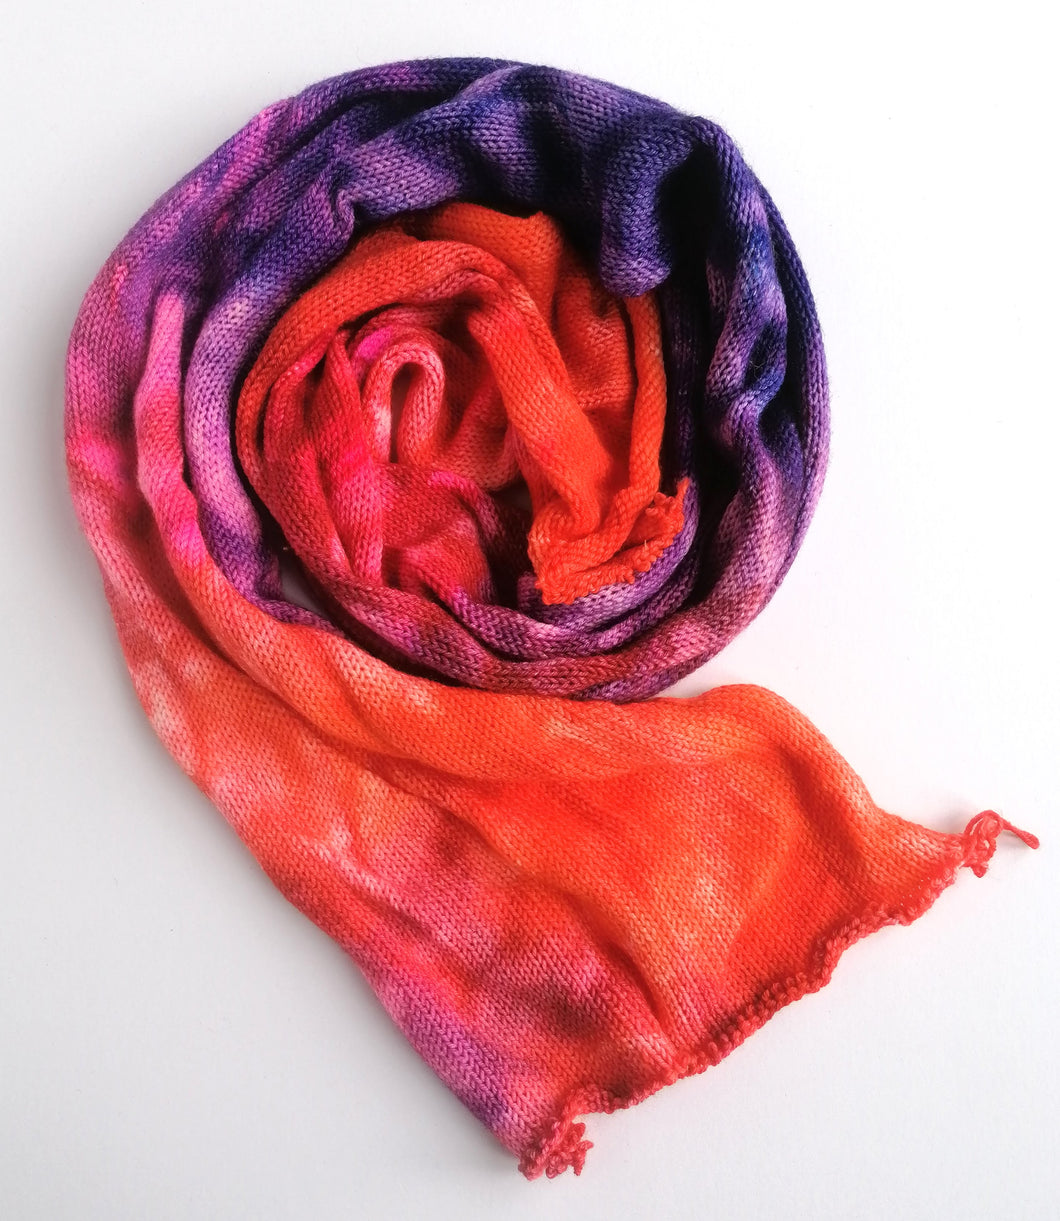 Hand dyed sock blank in a Superwash Merino/Nylon base in orange, pink and purple.